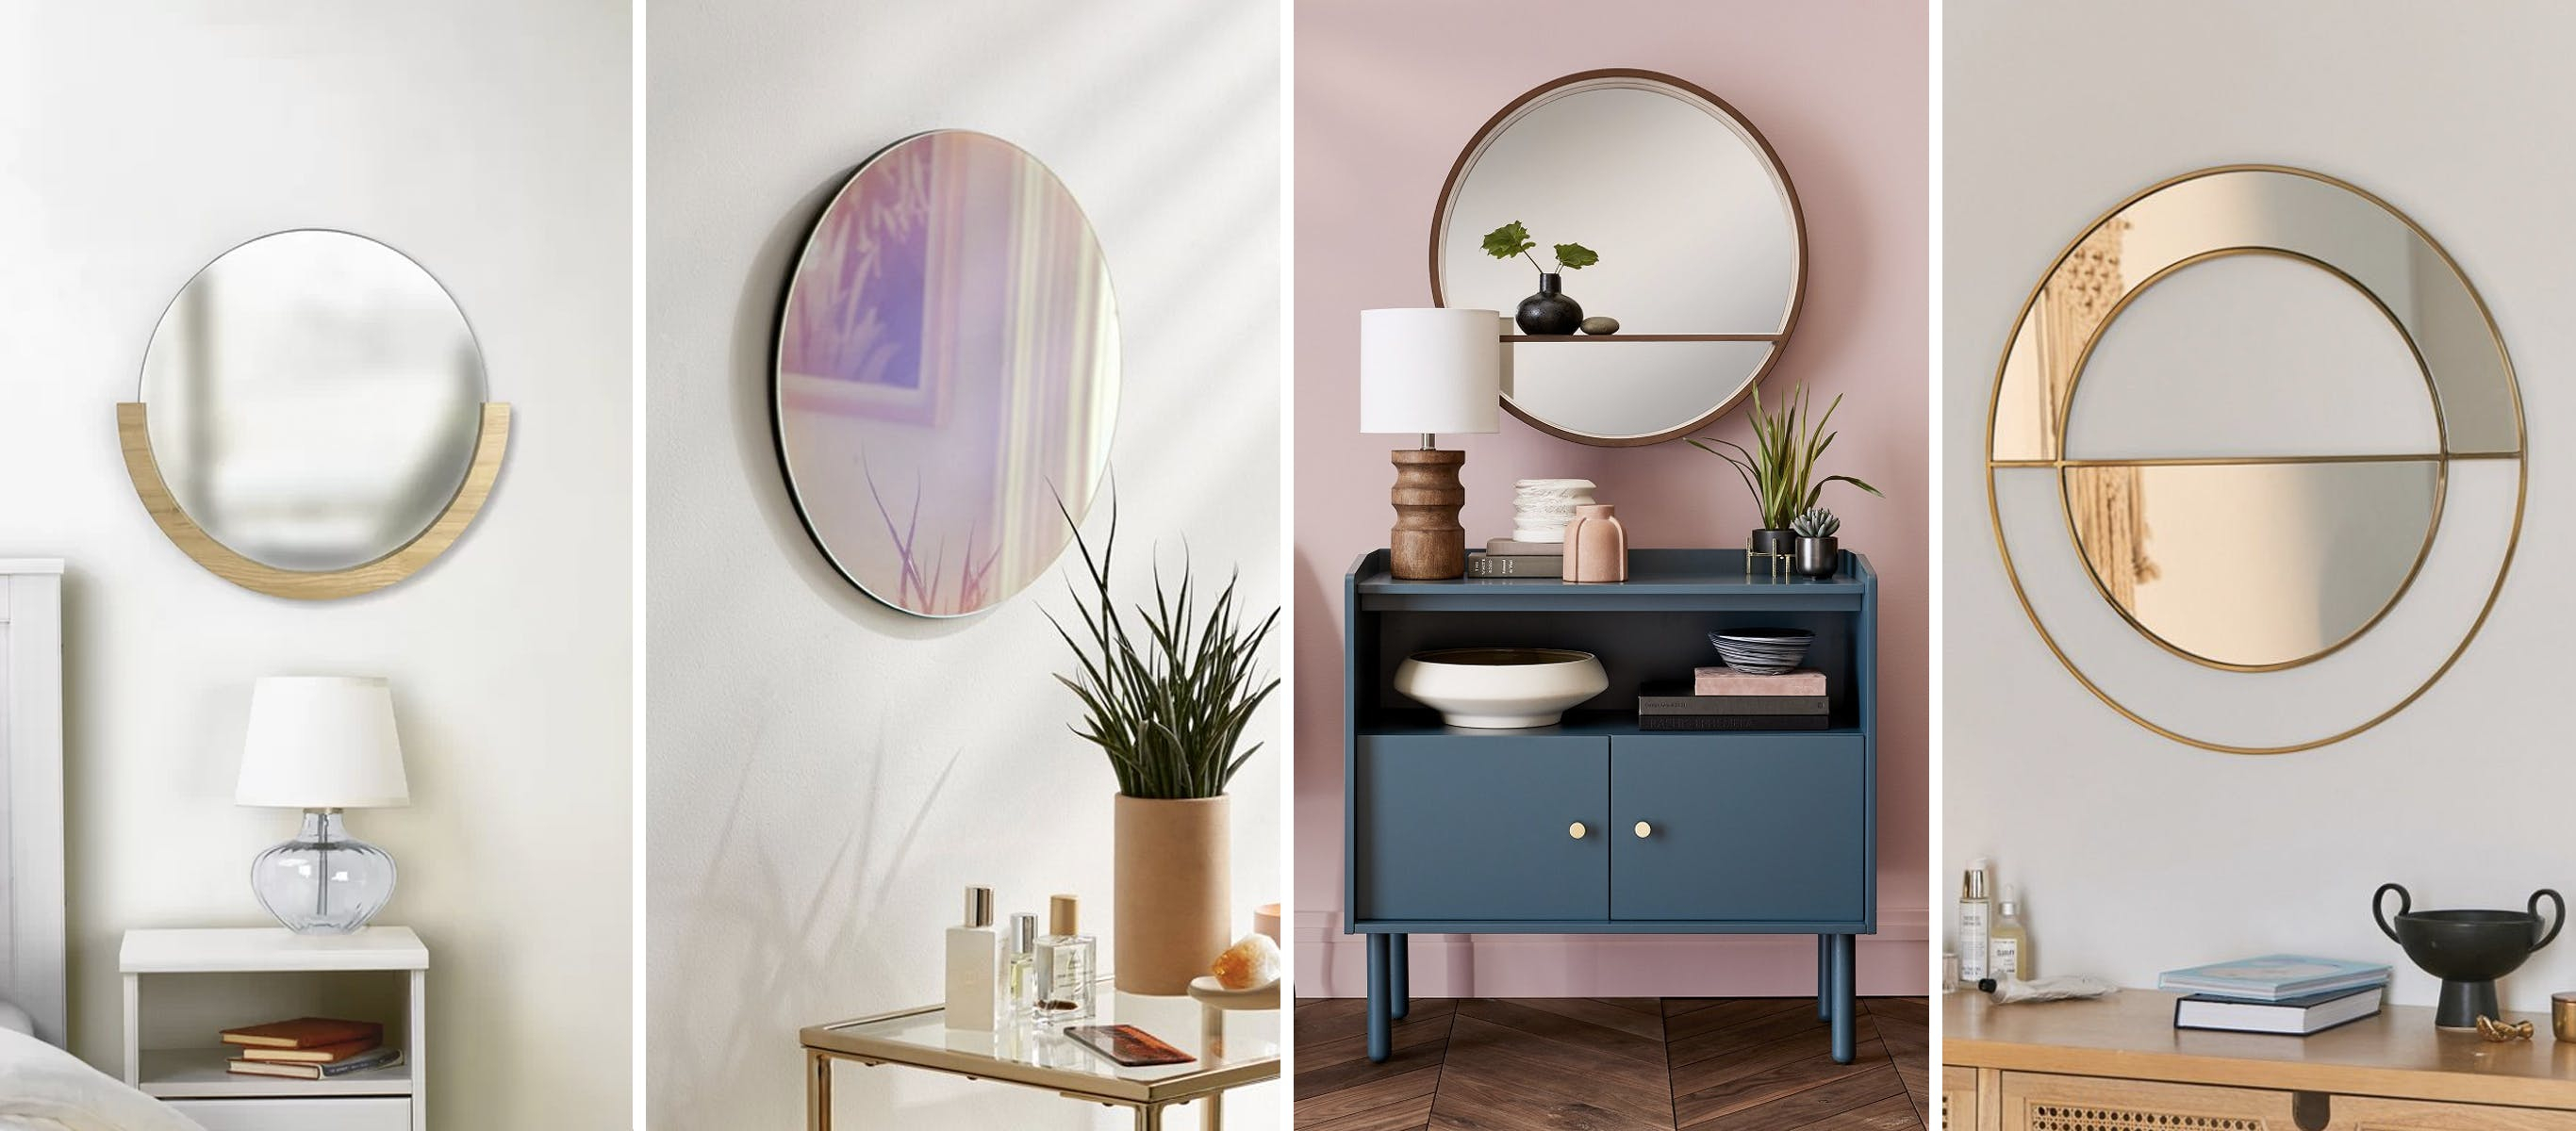 Round Mirrors For Wall Decor In The Home | Brit + Co Regarding Rhein Accent Mirrors (View 20 of 20)